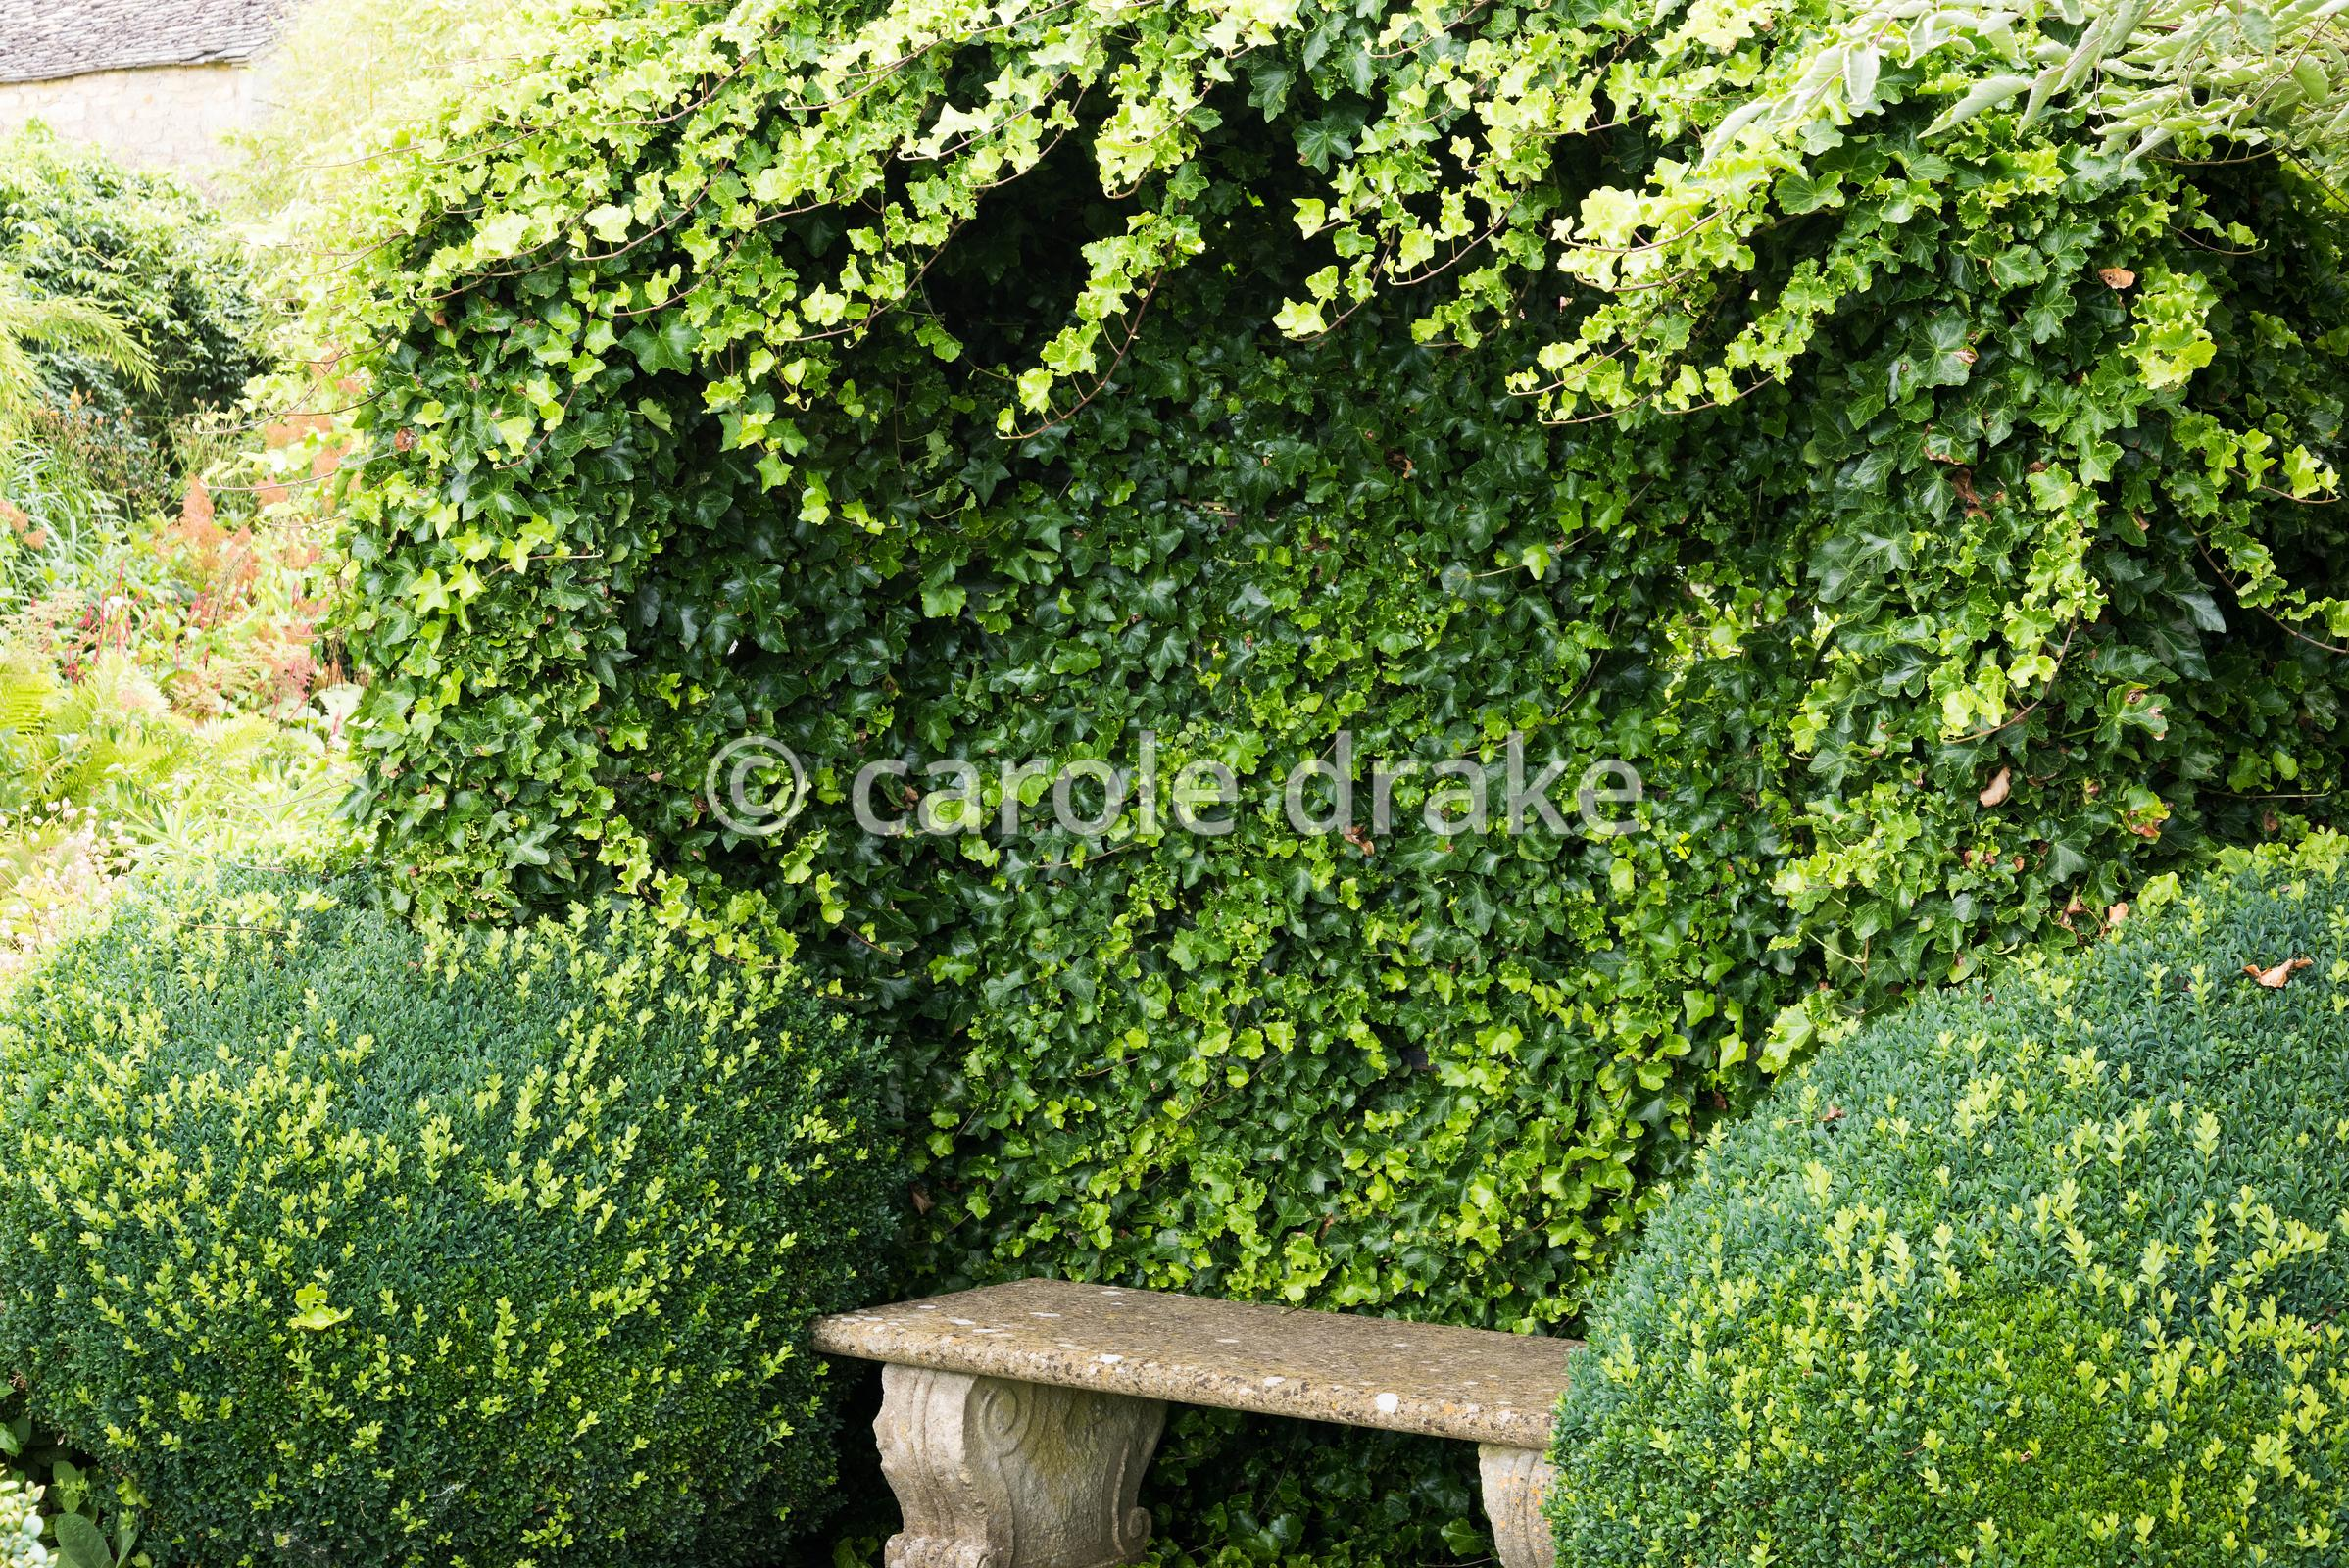 Ivy clad arbour framed by clipped box balls in the Knot Garden at Bourton House, Moreton-in-Marsh in August